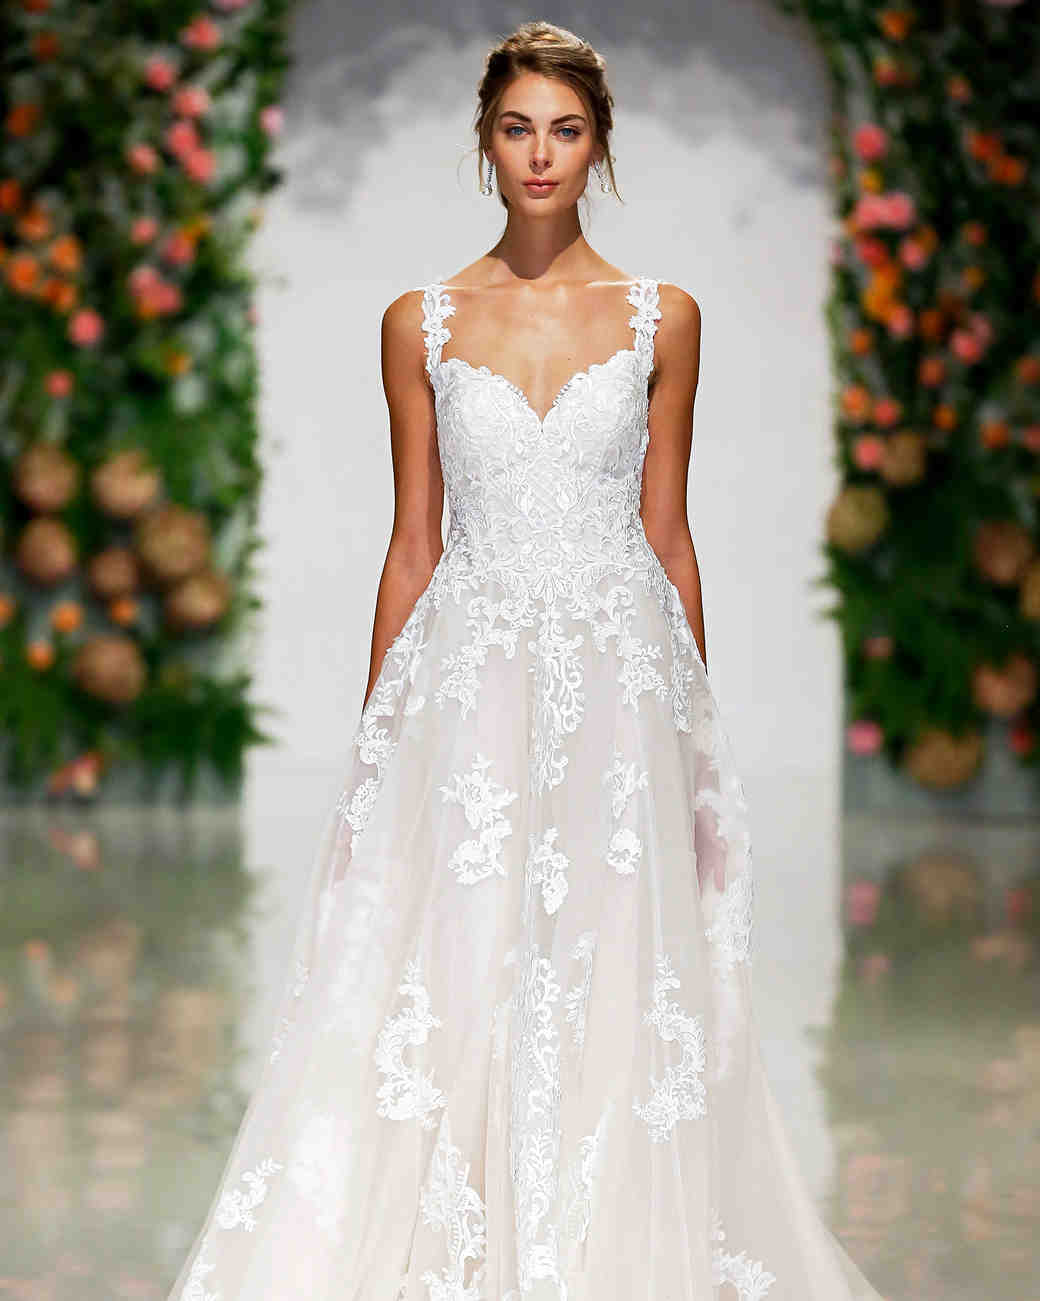 f15940674df3b morilee madeline gardner wedding dress sweetheart embroidered a-line